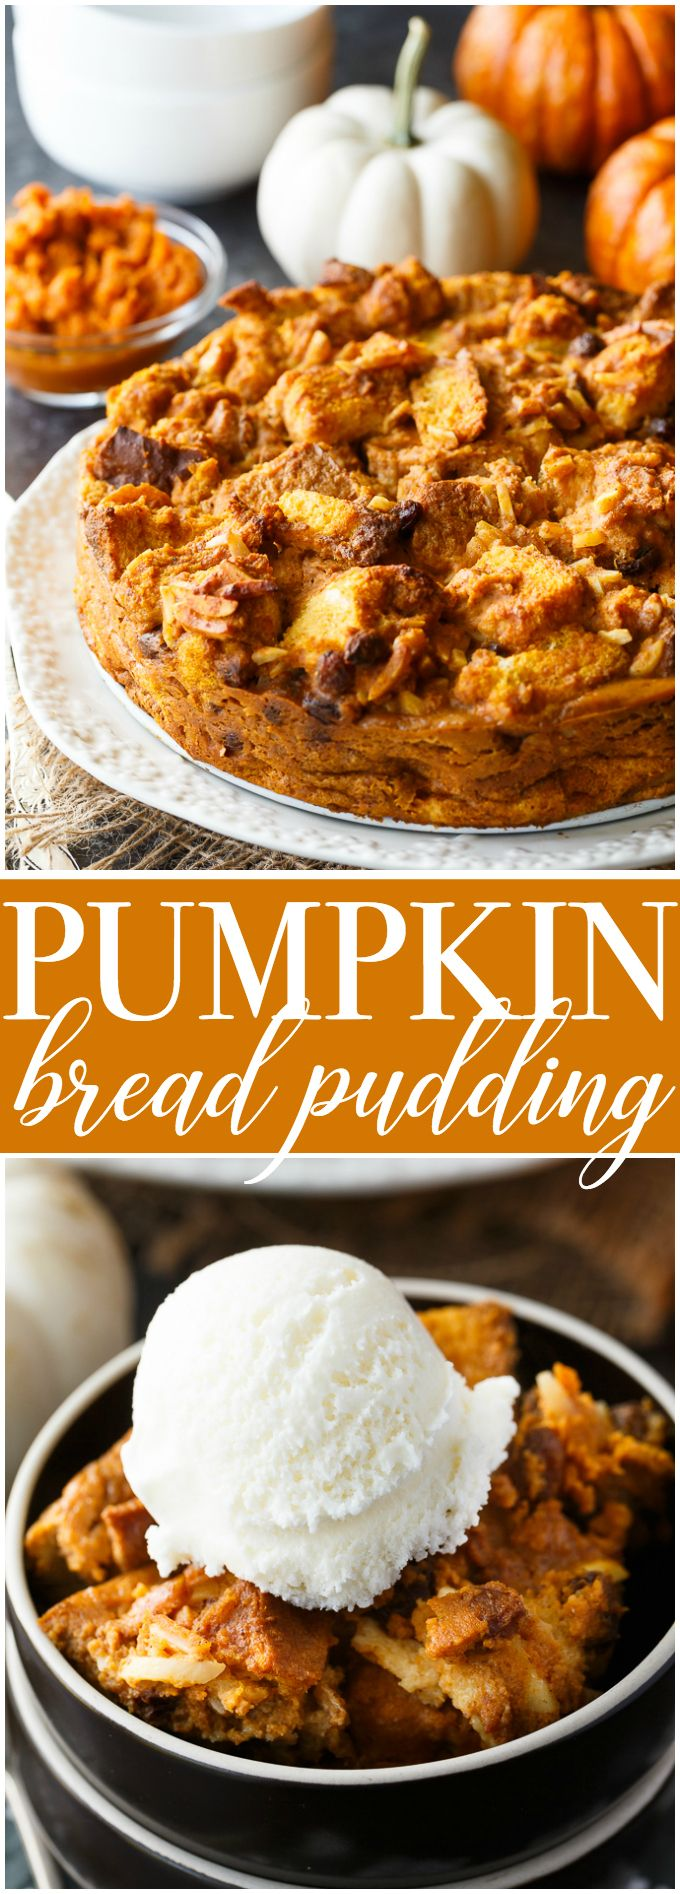 Pumpkin Bread Pudding - Creamy, smooth and full of luscious pumpkin flavour! This simple bread pudding will become an instant family favourite.